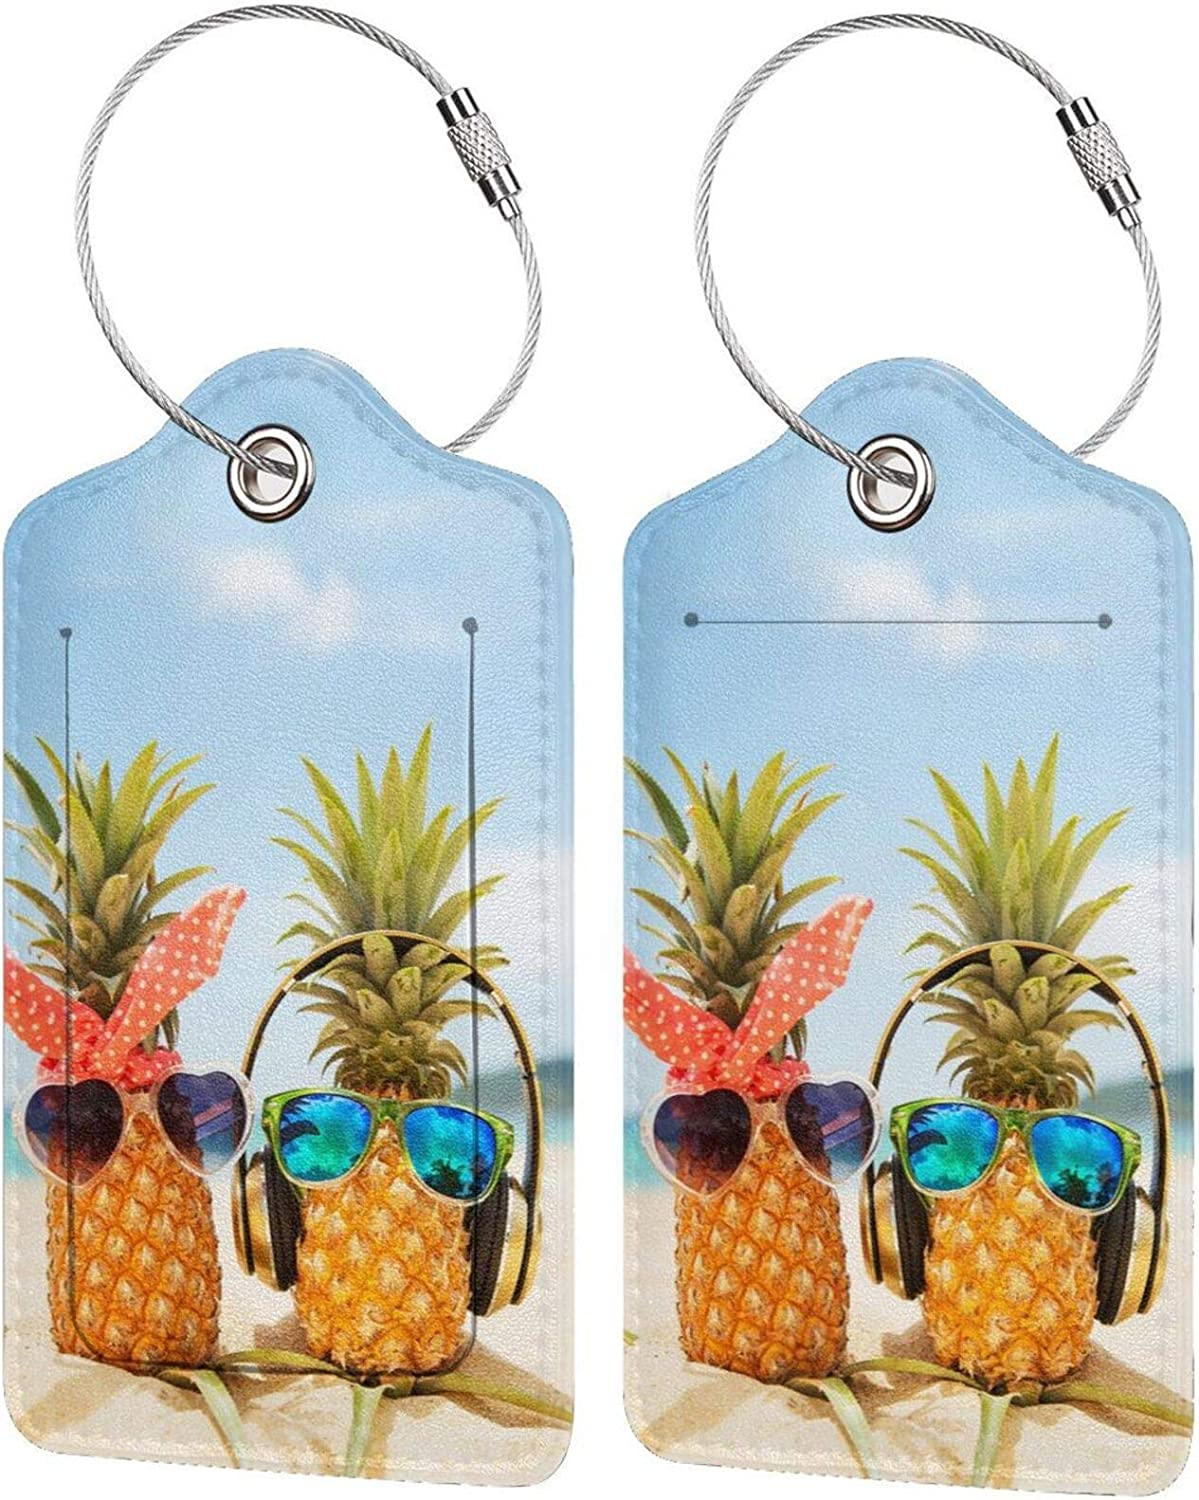 HHFASN Pineapple Cheap mail order specialty store with Fashion Sunglasses Tags Fun 2-Pack Max 60% OFF Luggage